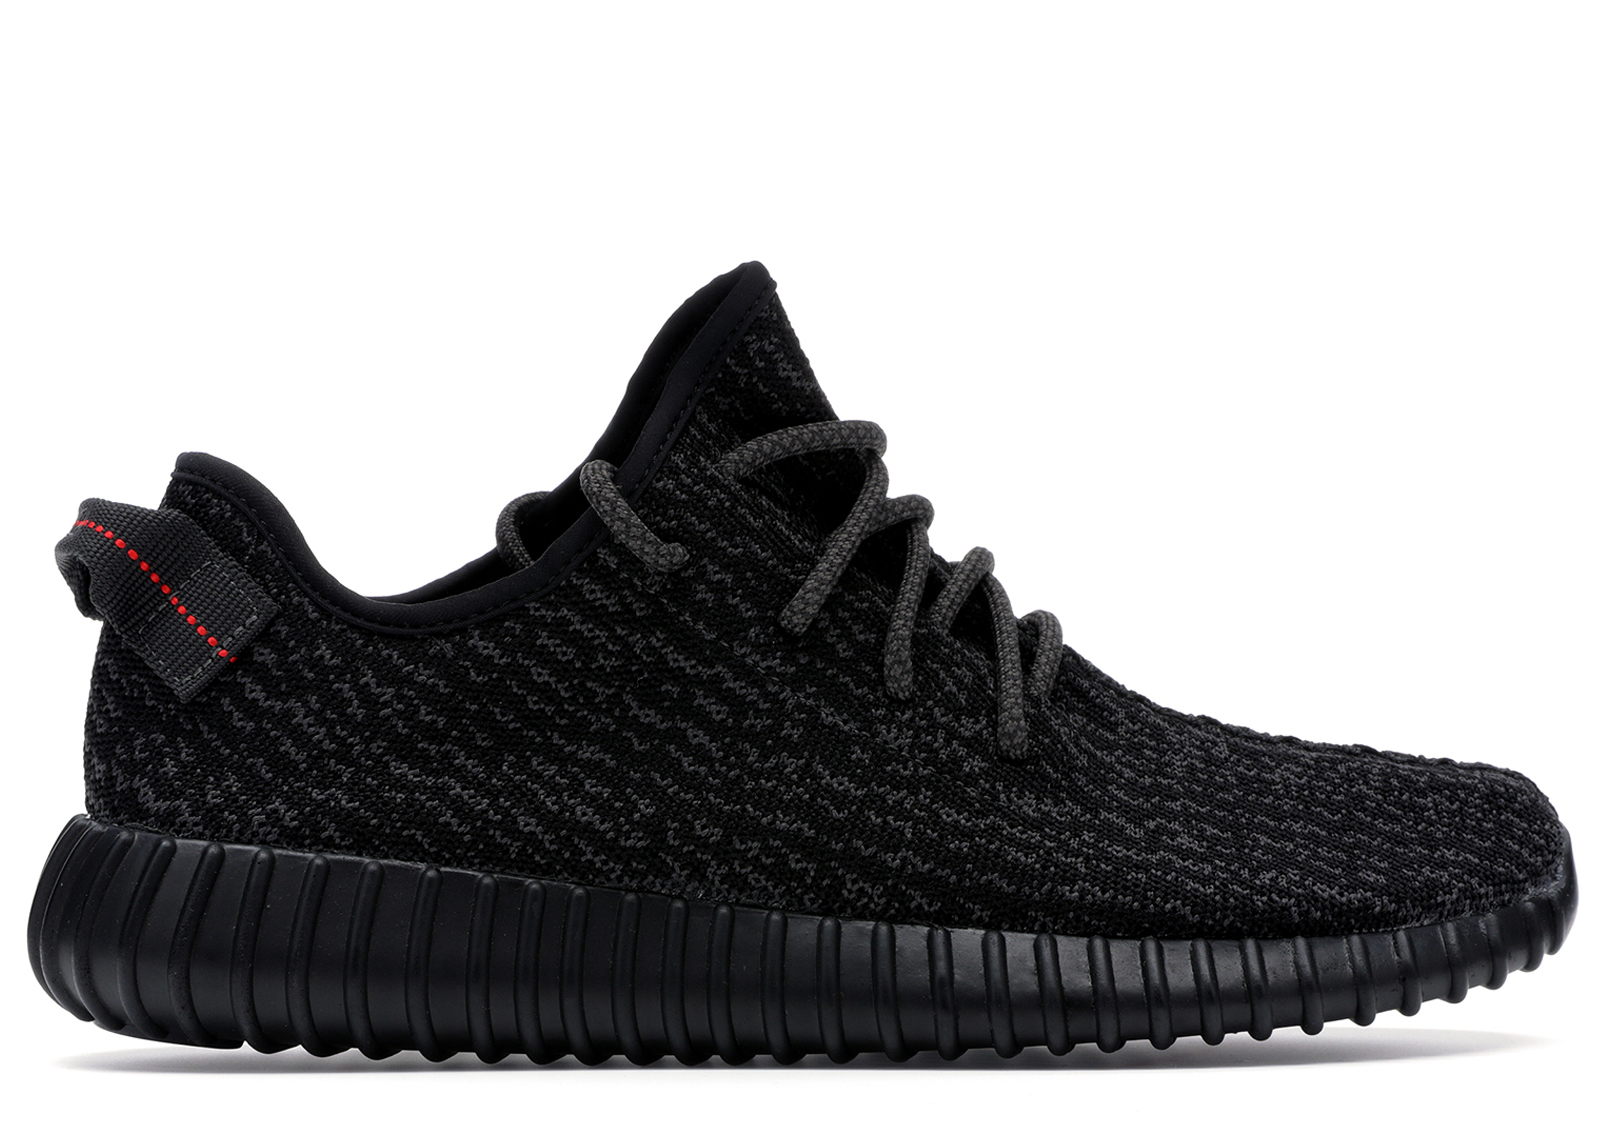 adidas yeezy boost 350 purate black